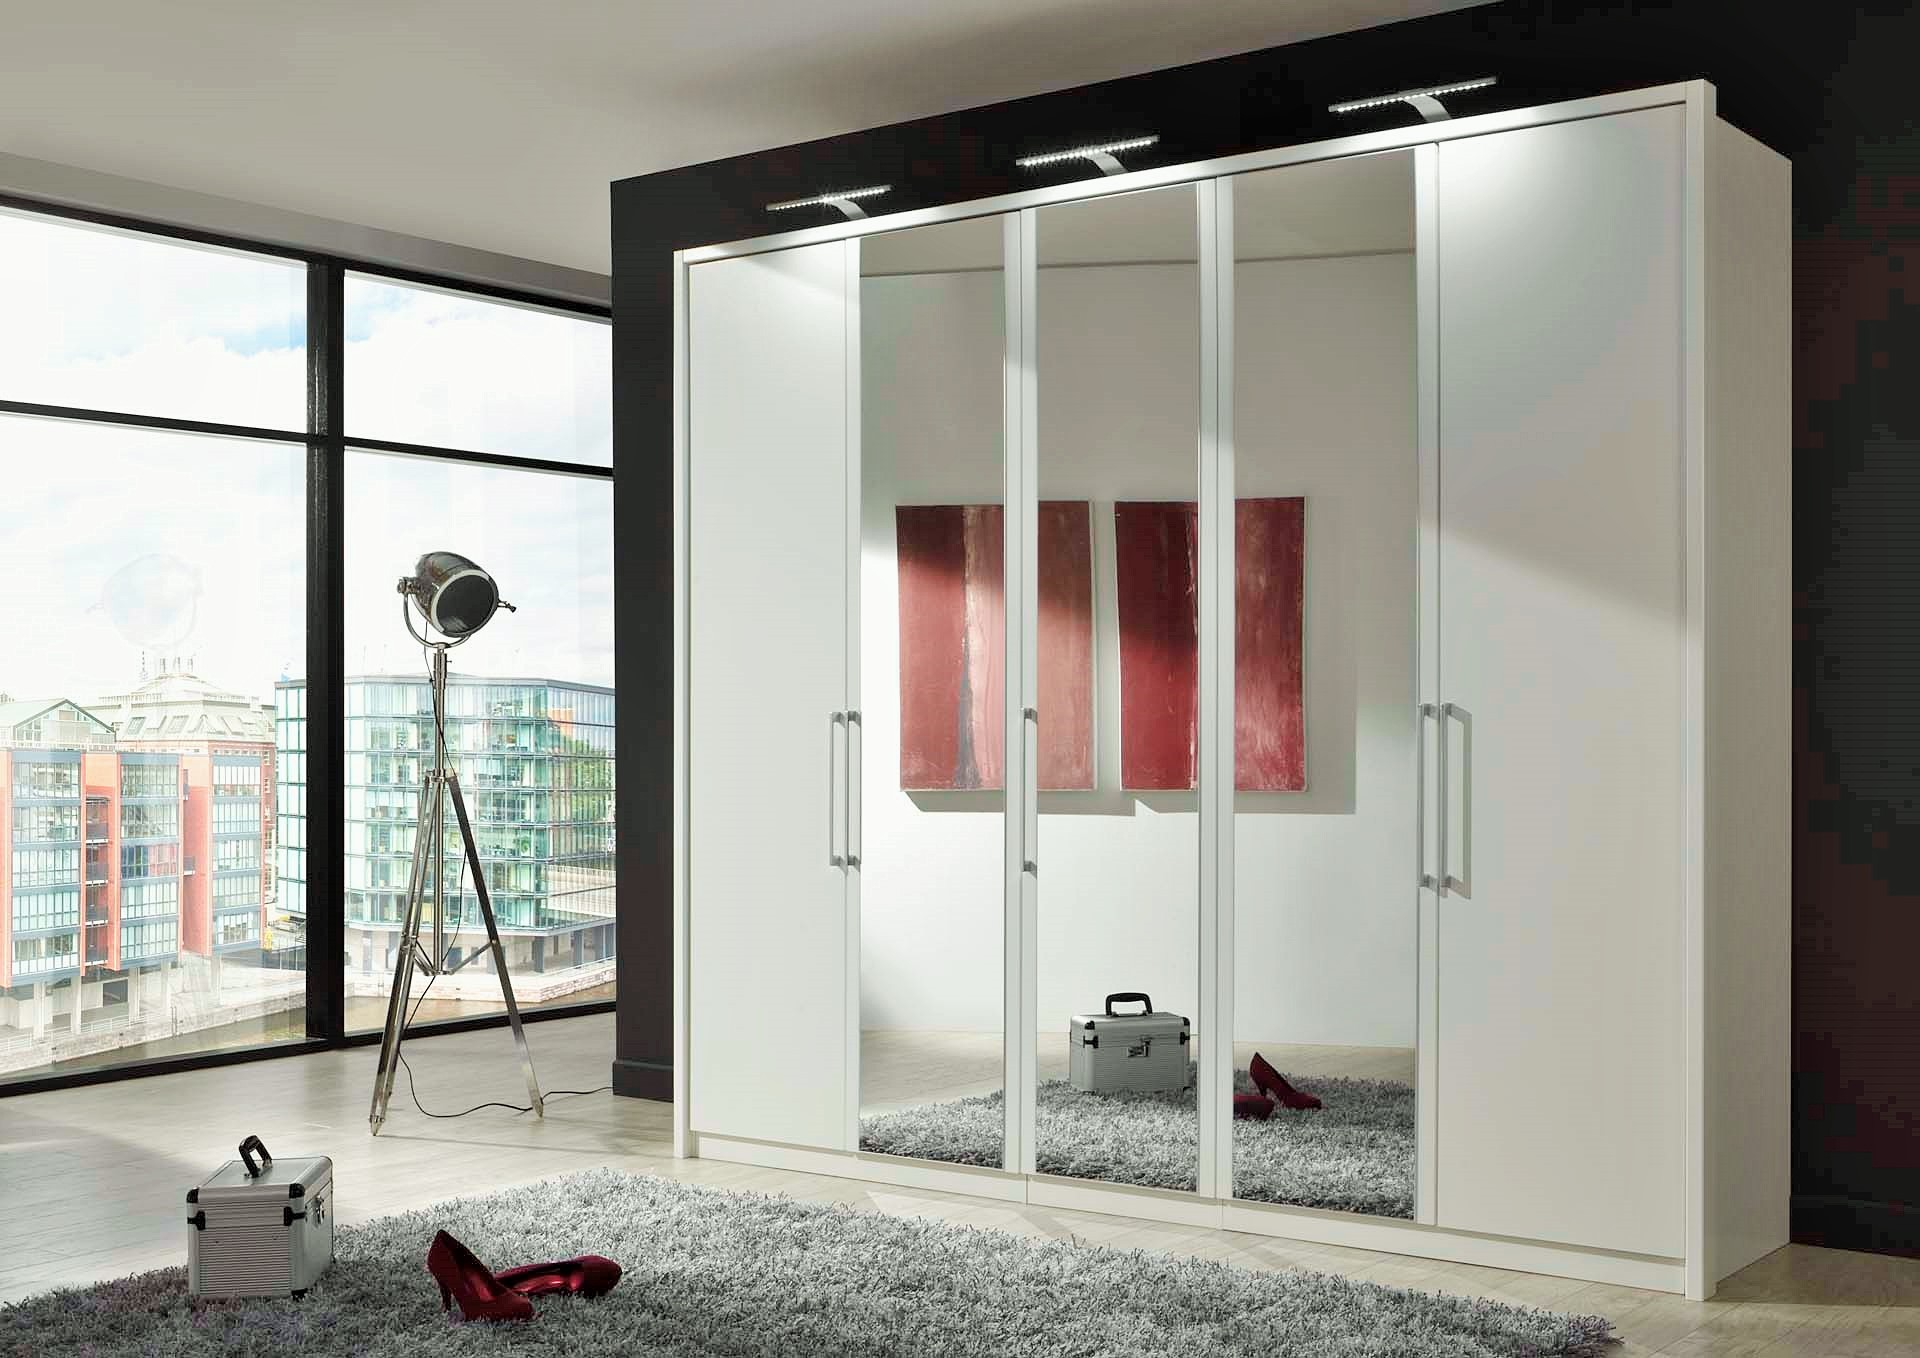 Stylform linus hinged door wardrobe wood and mirror head2bed uk - Grande armoire chambre ...